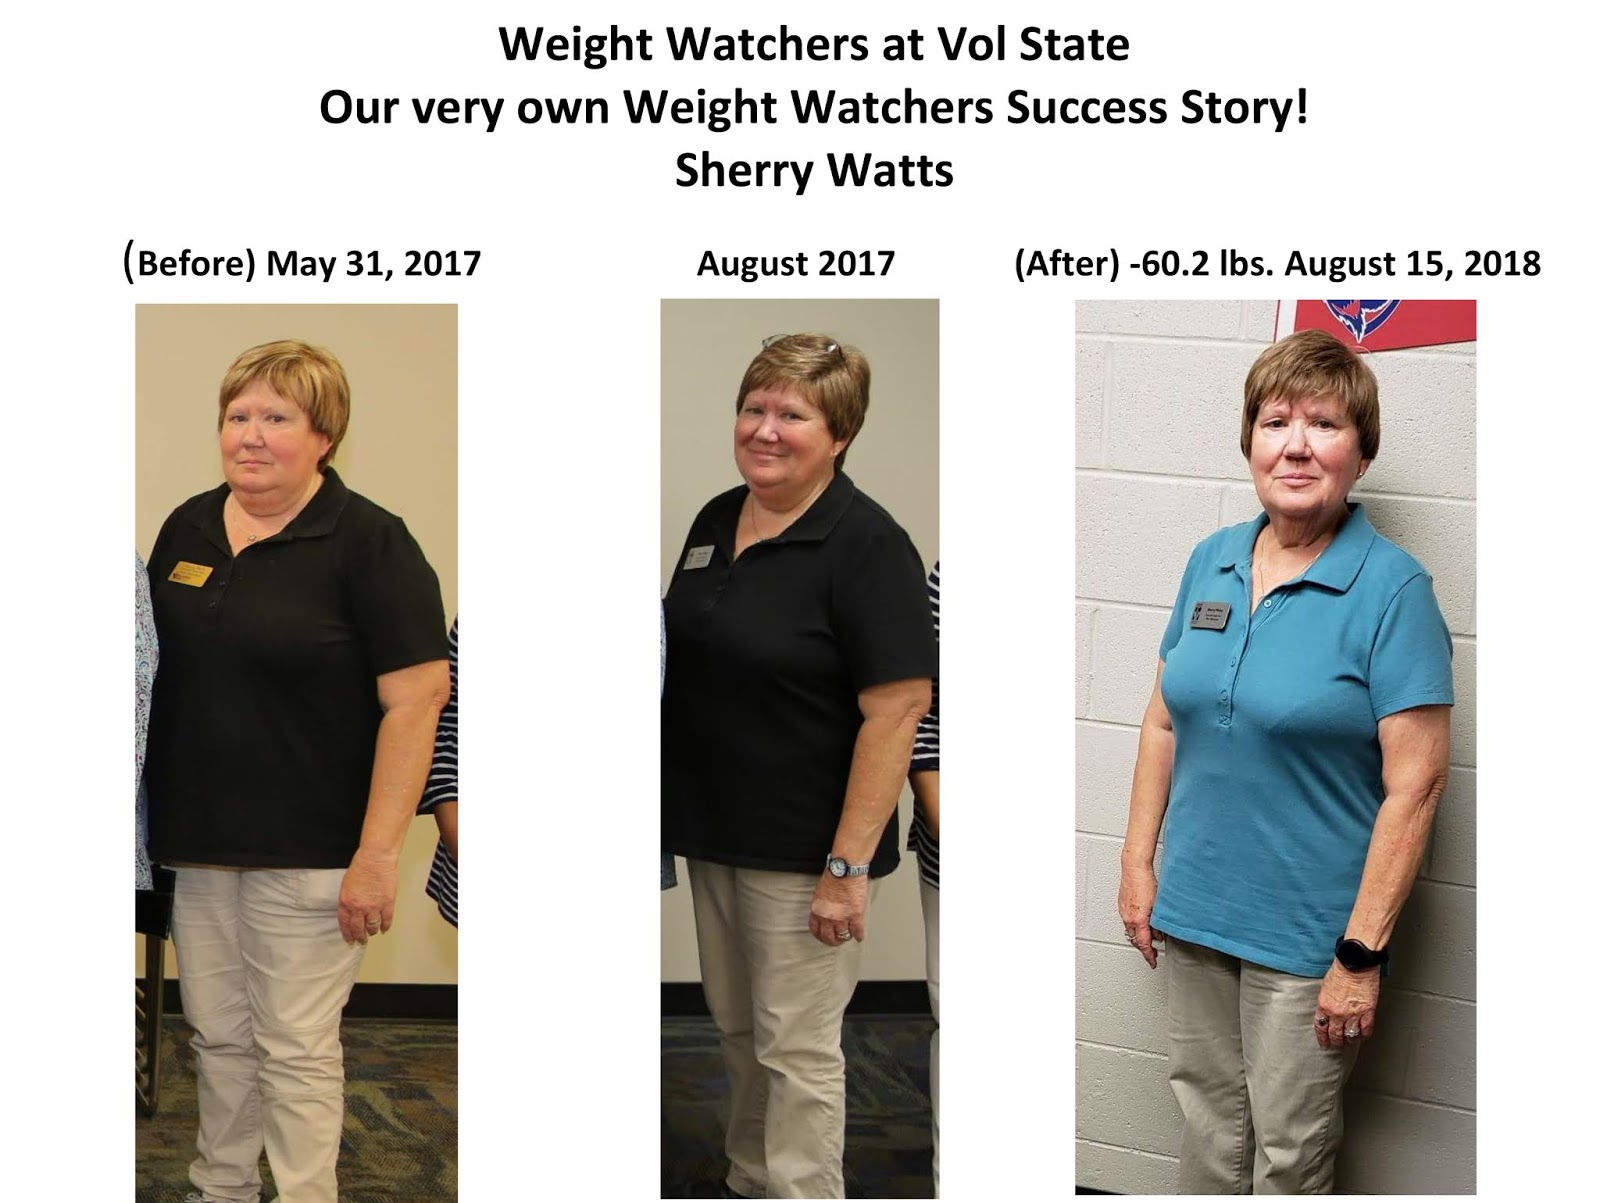 The Vol State Insider: Weight Watchers Success Story